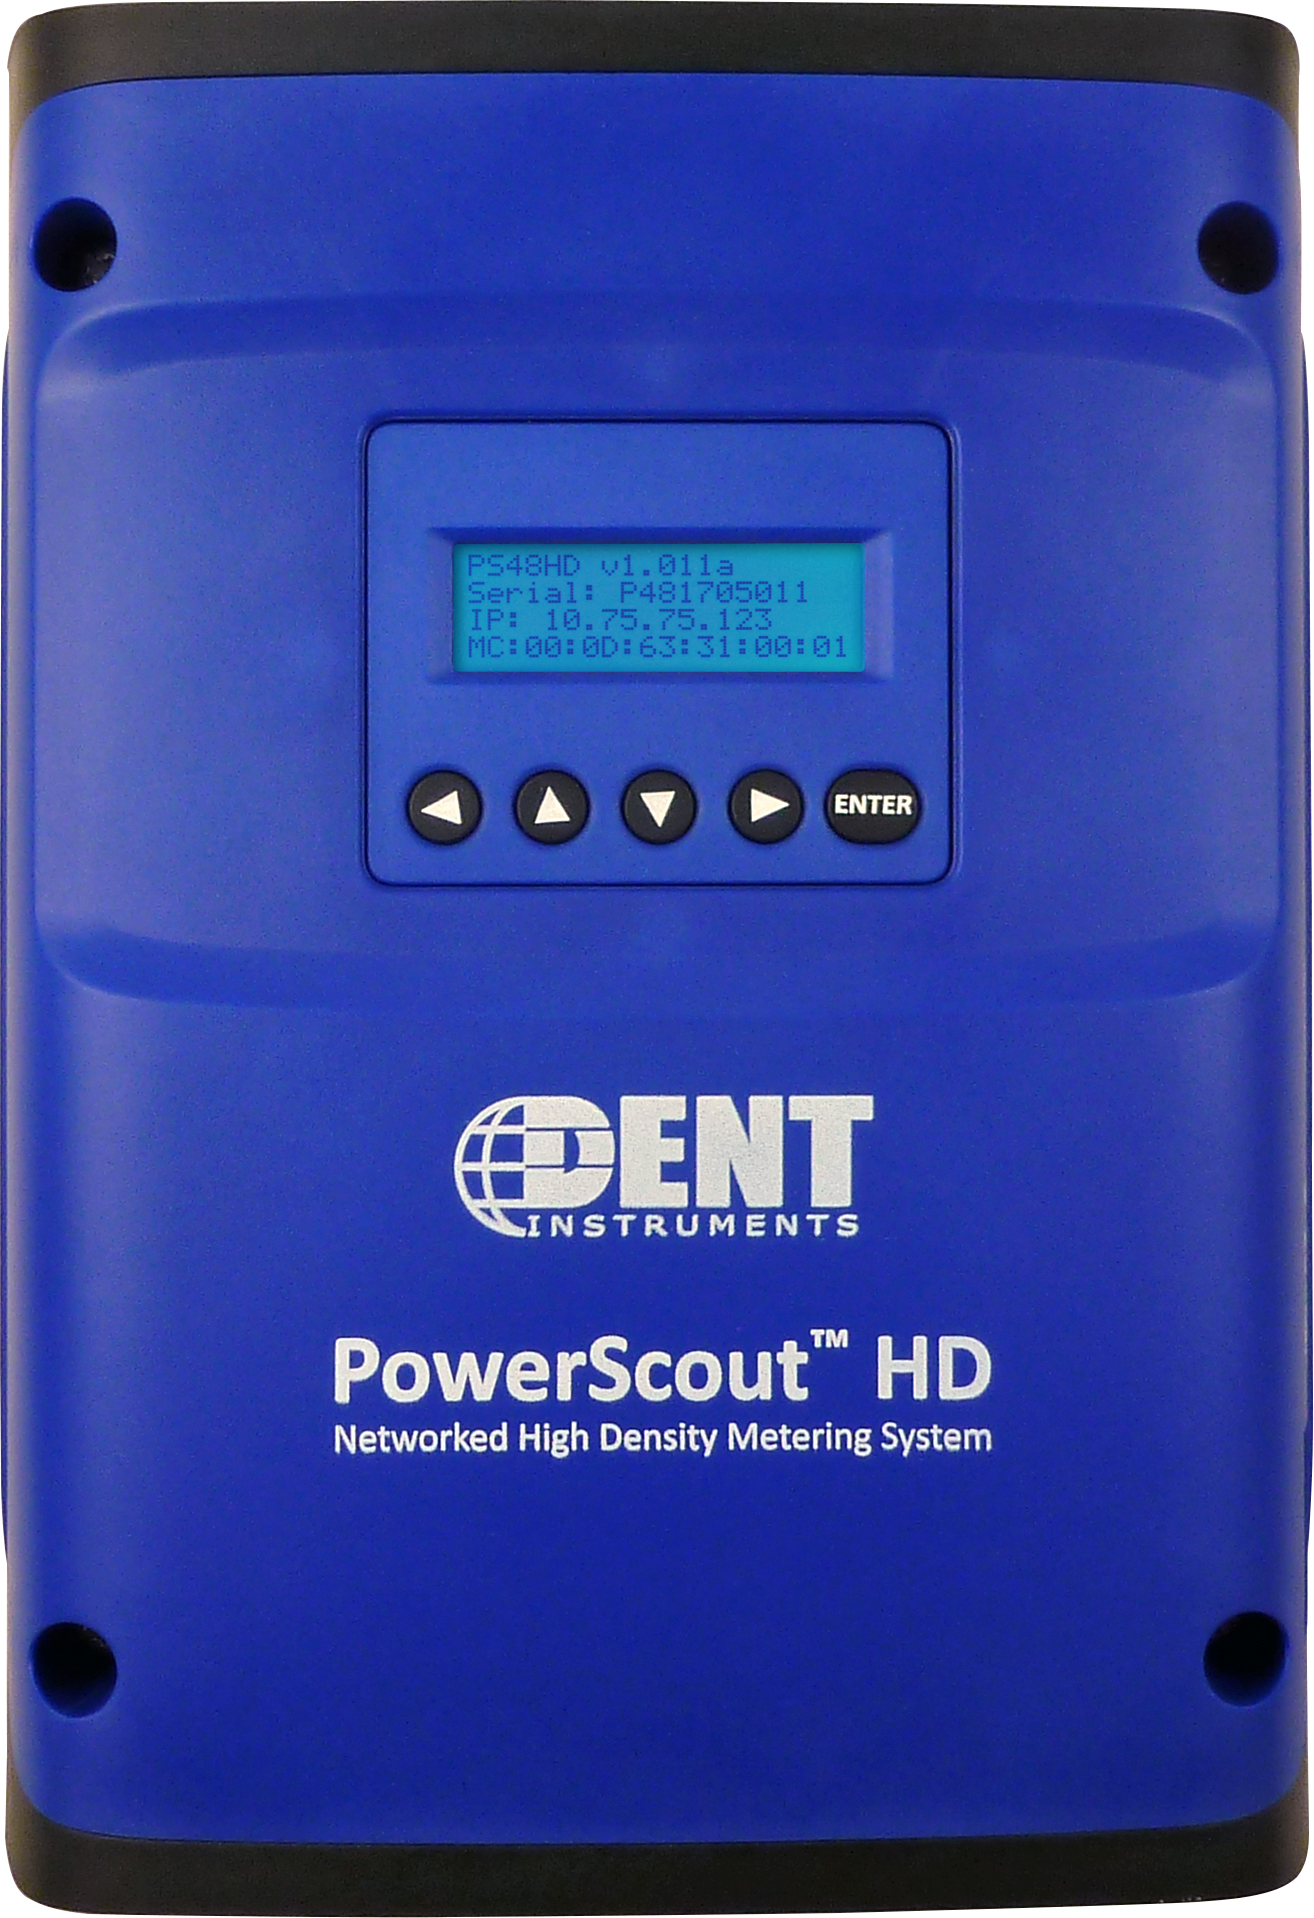 DENT Instruments Launches All-New PowerScout 12 HD and PowerScout 48 HD Multi-Circuit Power Submeters